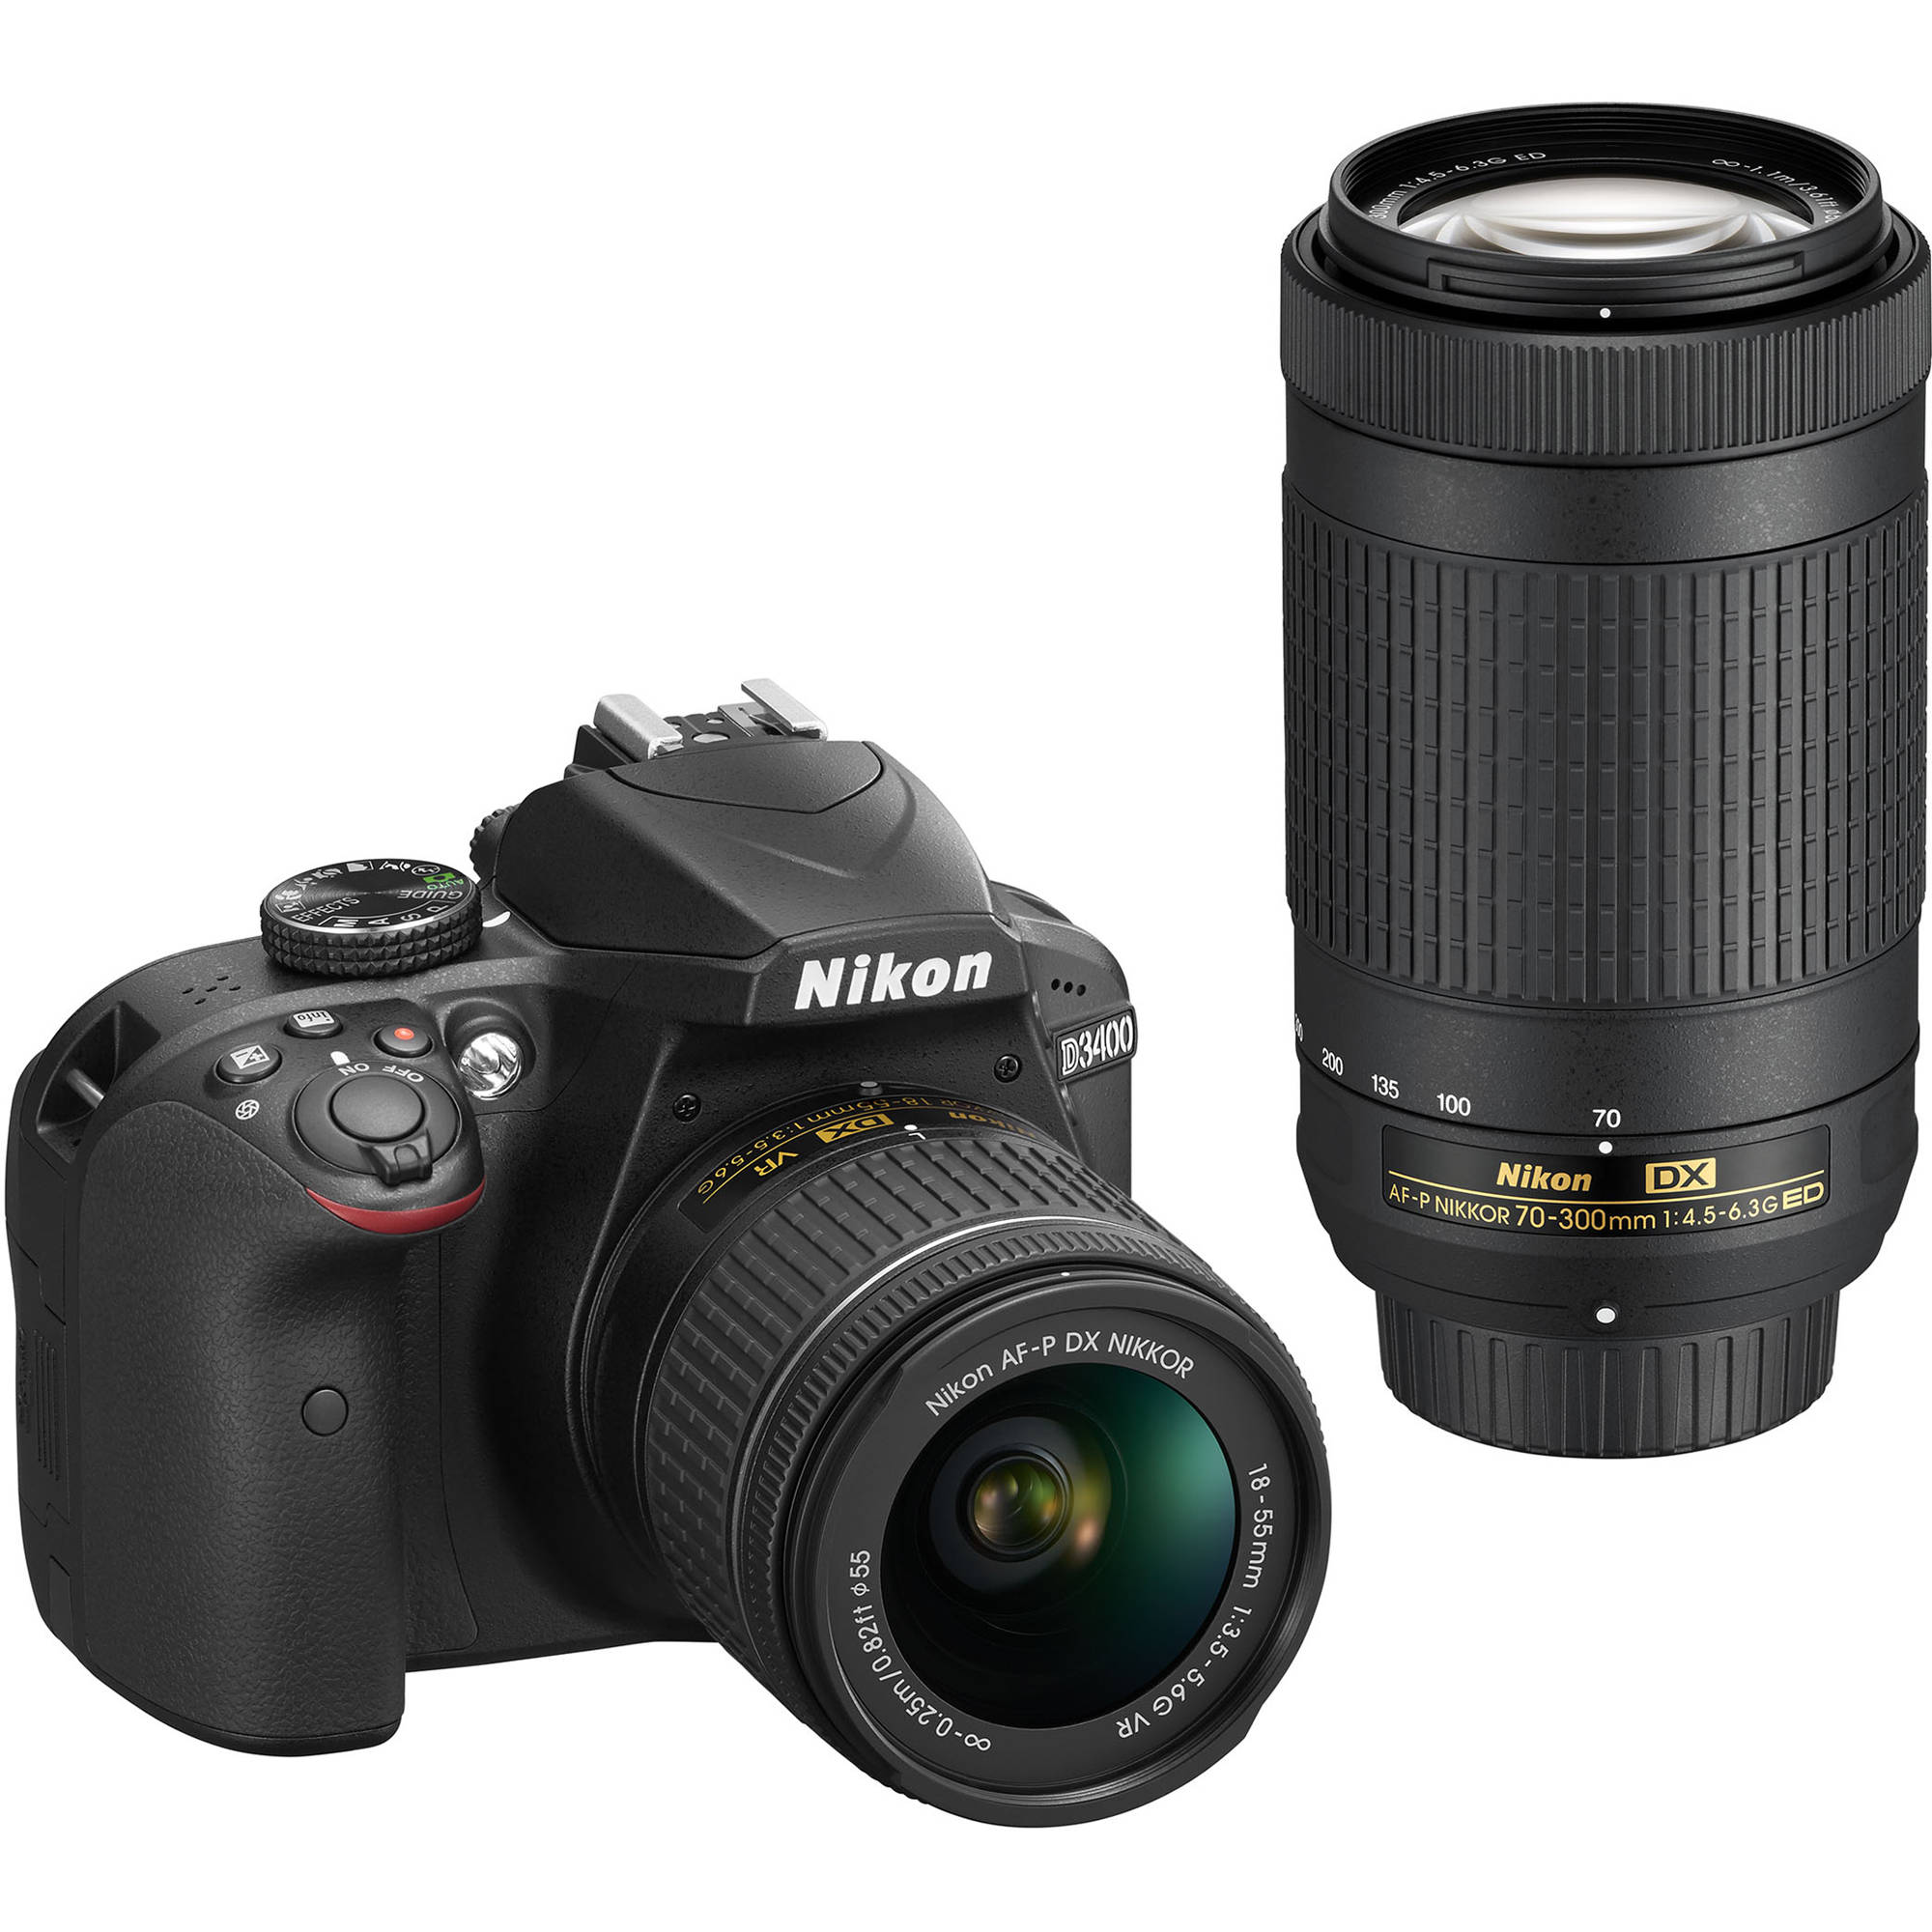 Nikon D3400 DSLR Camera with 18-55mm and 70-300mm Lenses 1573B